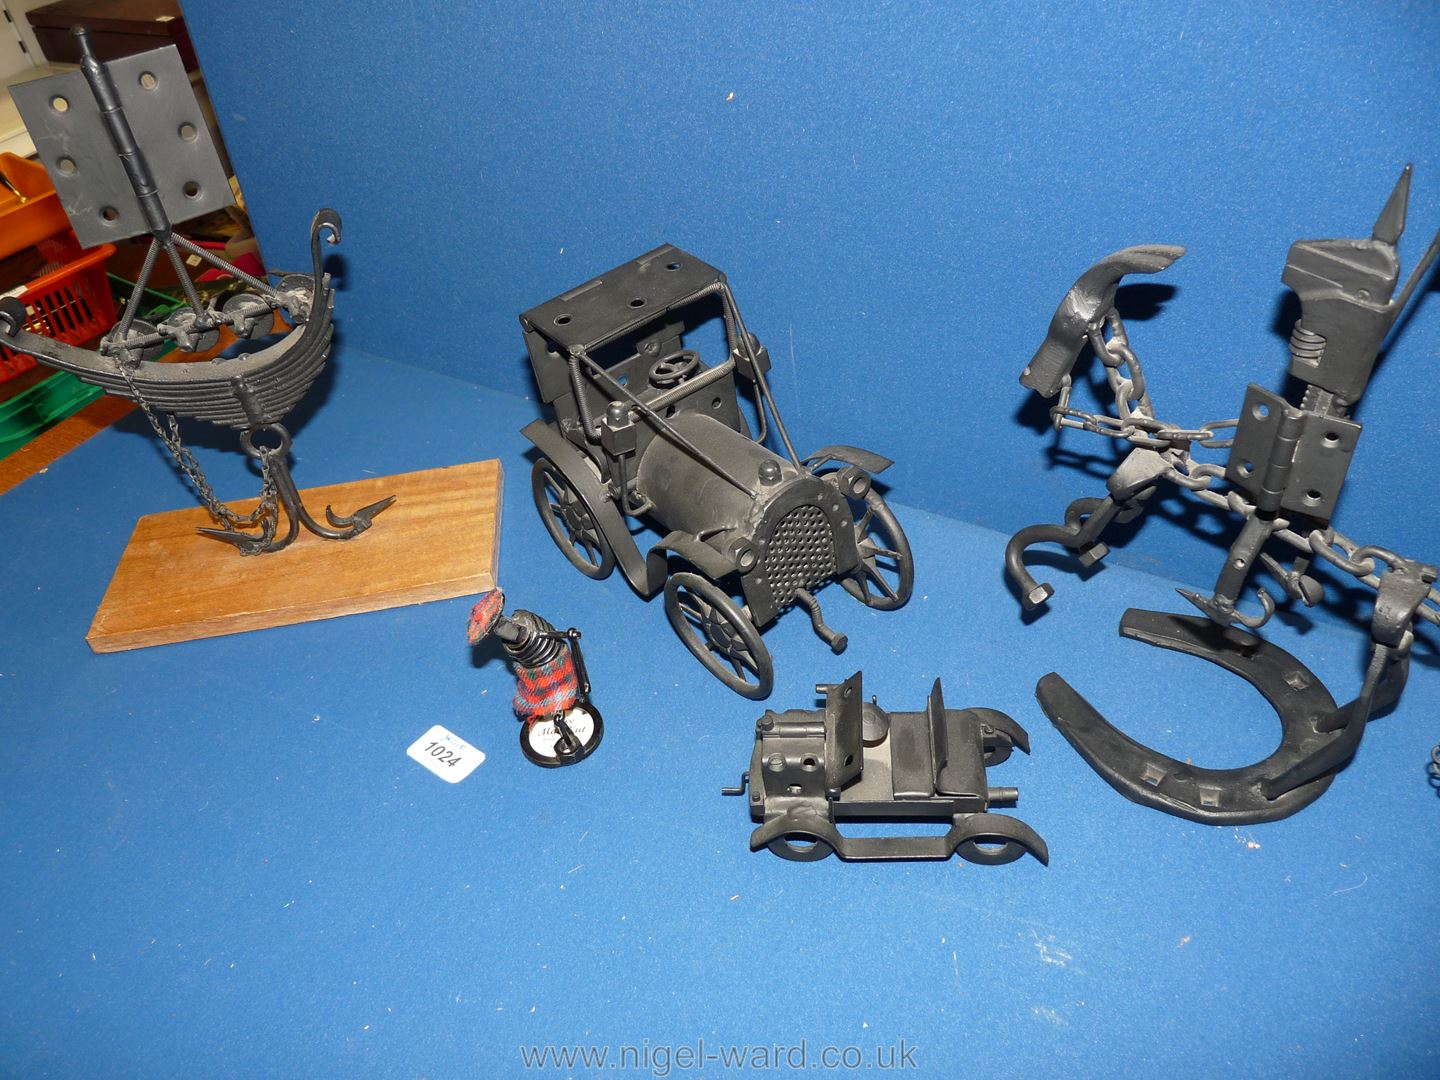 Five metal sculptures made from scrap metal in the form of a ship, knight on horseback, vintage car, - Image 2 of 2